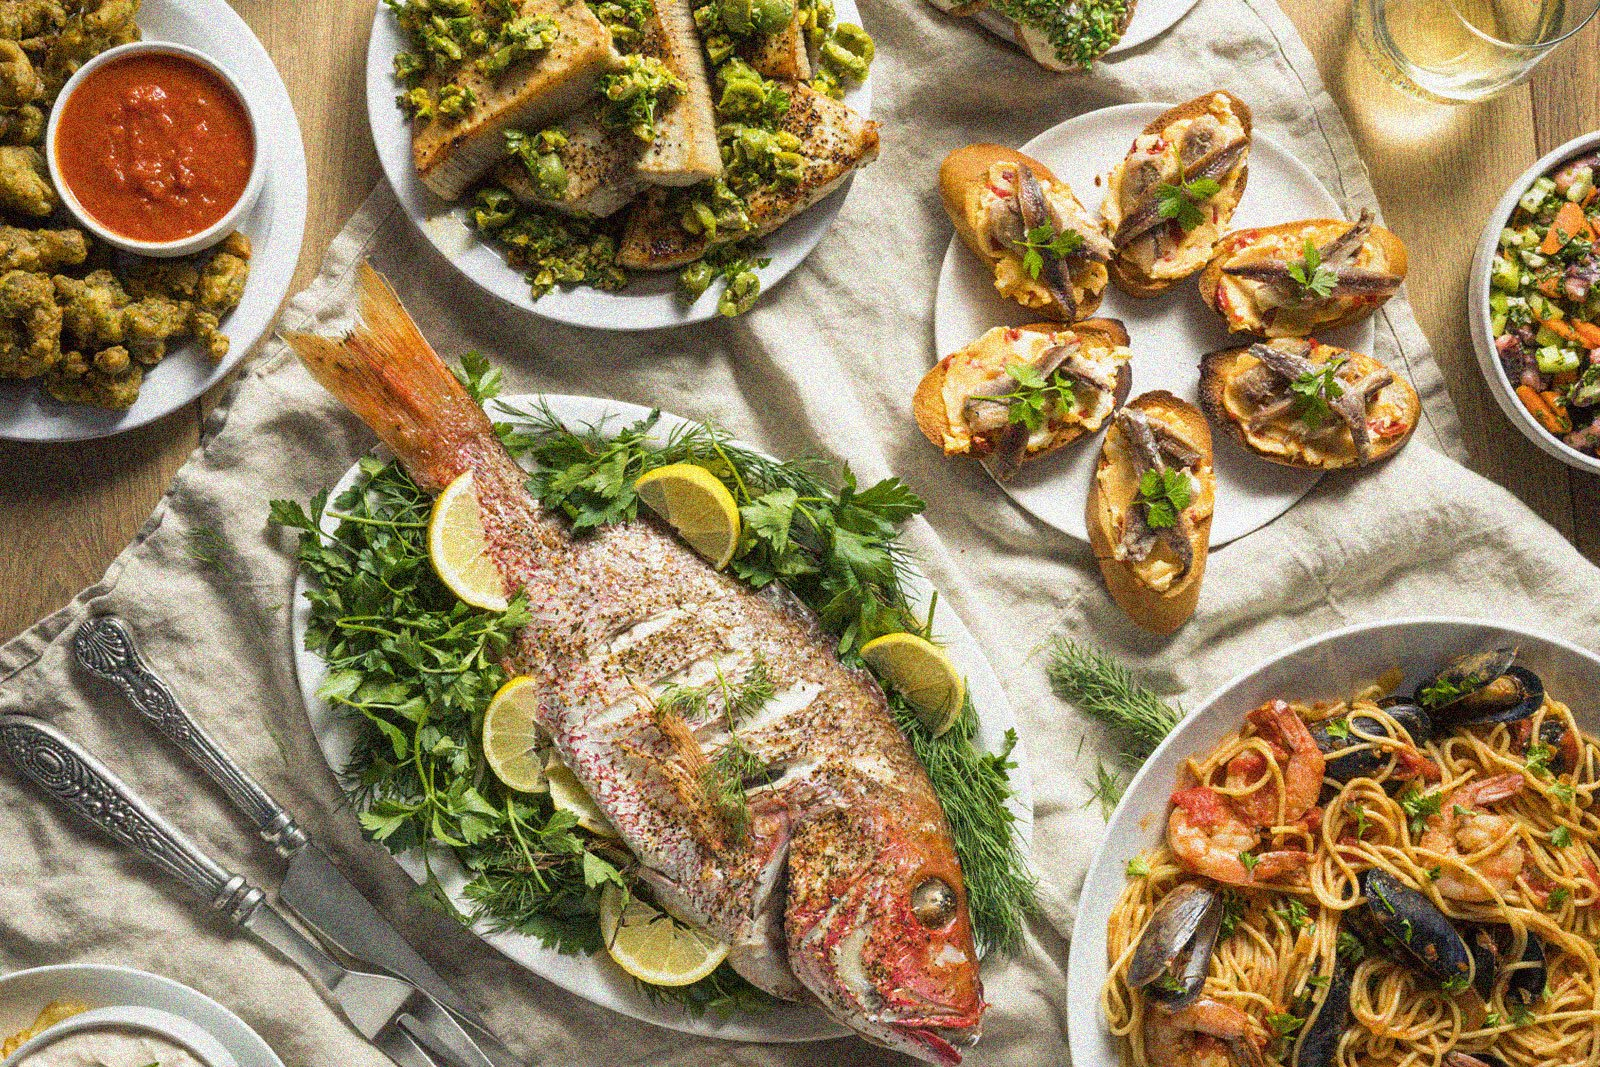 assortment of dishes on a table including fish, spaghetti with seafood, bread